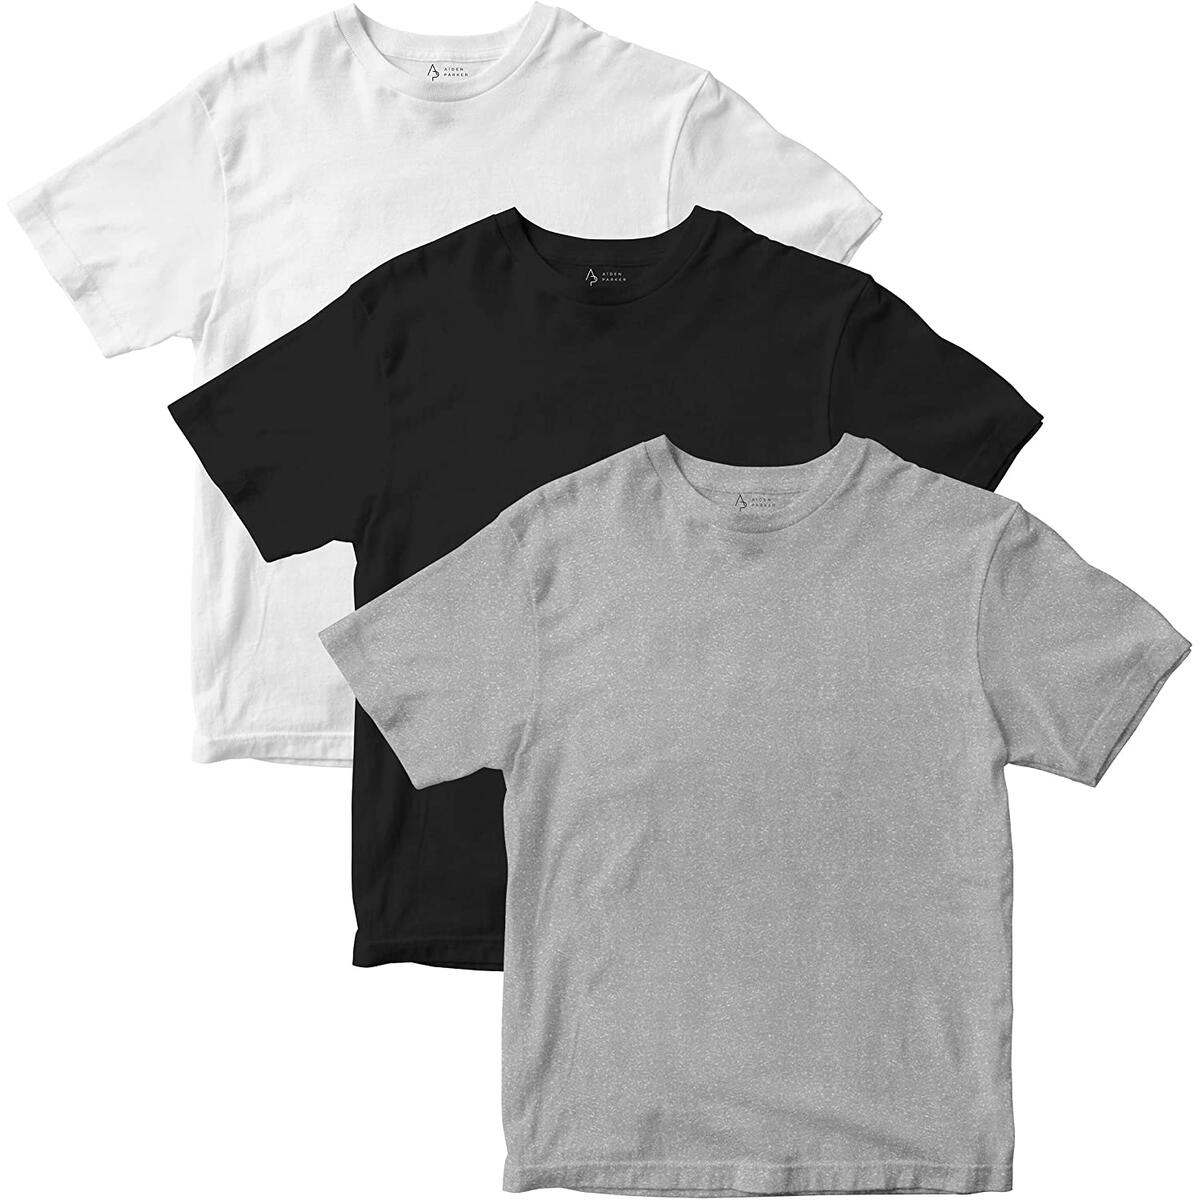 Aiden Parker Men's Breathable Ultra Soft Undershirts - 3 Pack Short Sleeve T-Shirts - Black / White / Heather Grey - Crew Neck (Size Large)